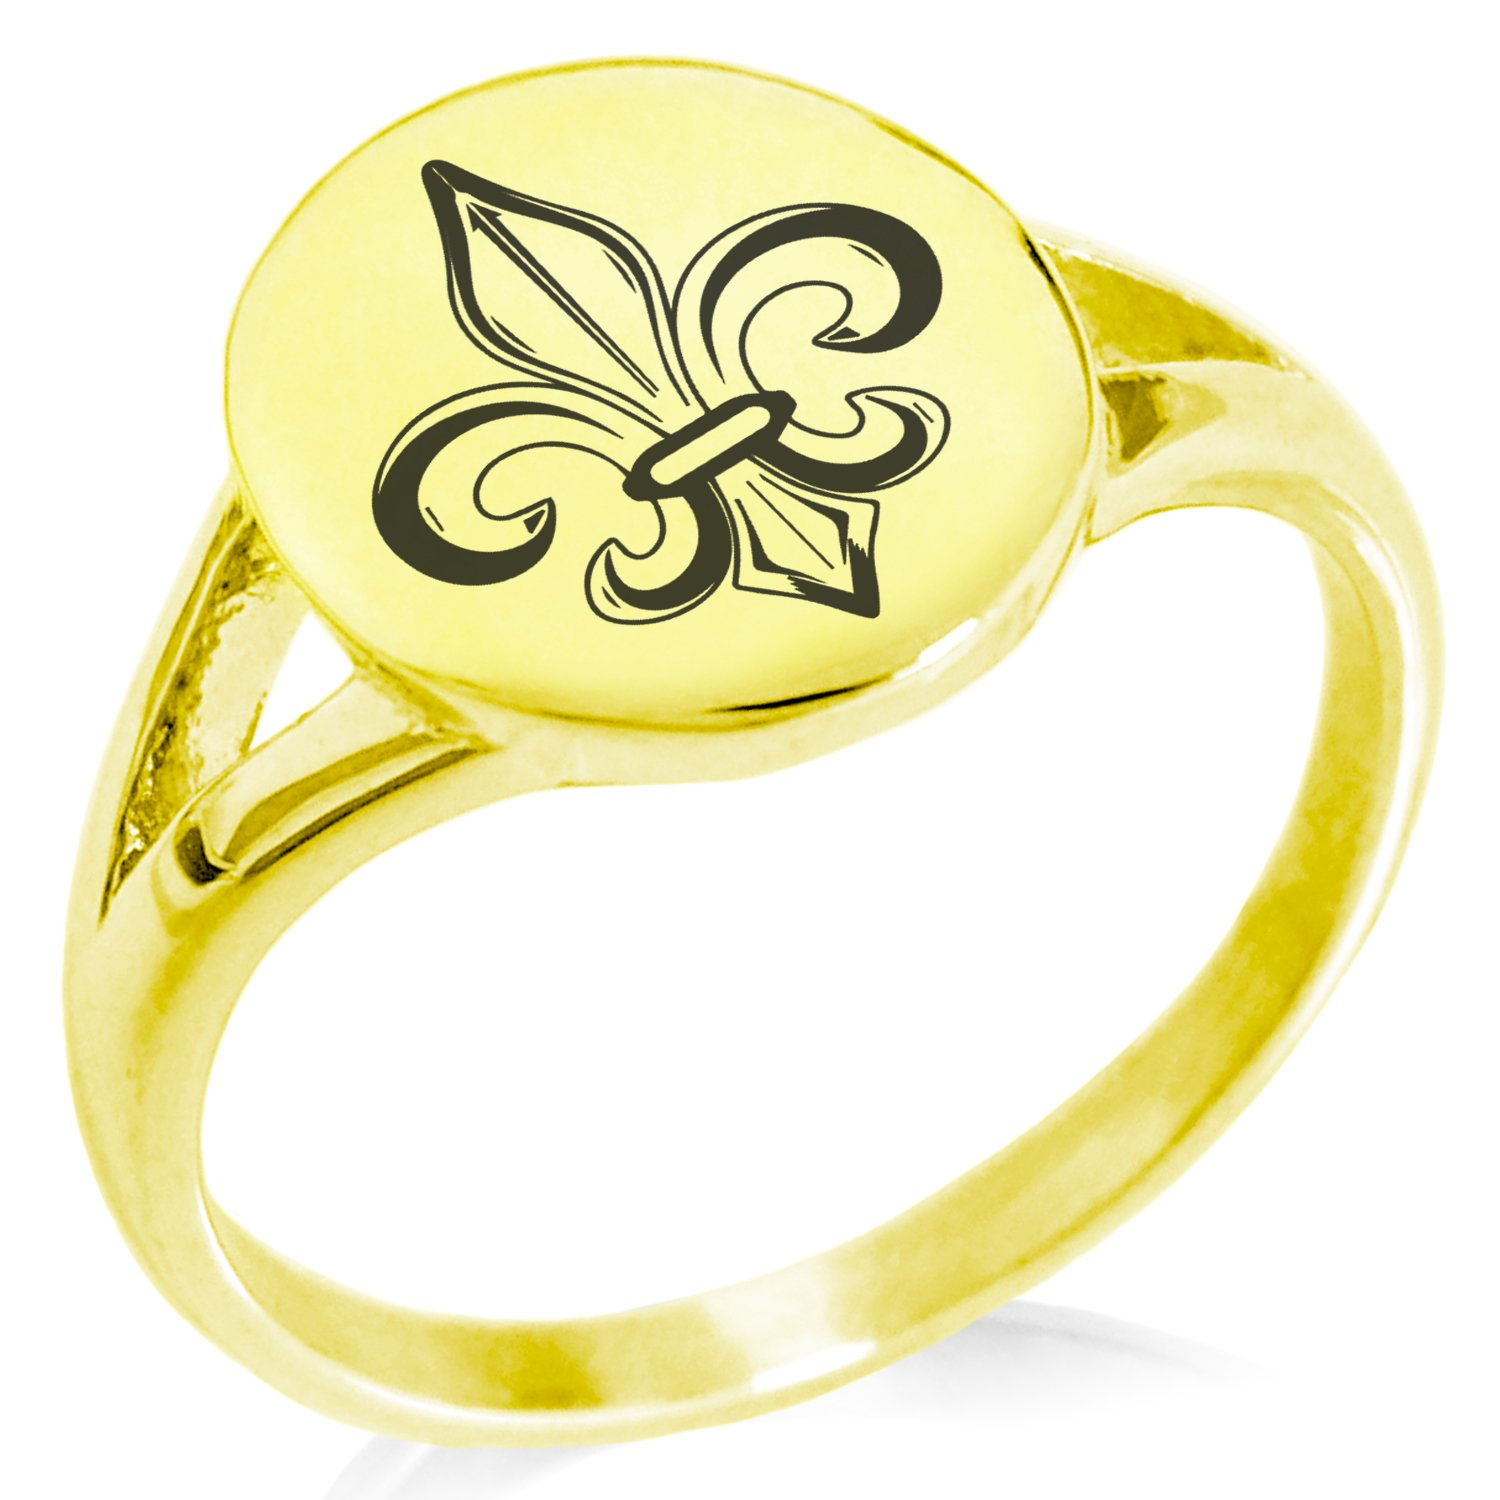 Tioneer Stainless Steel Valorous Fleur De Lis Symbol Minimalist Oval Top Polished Statement Ring